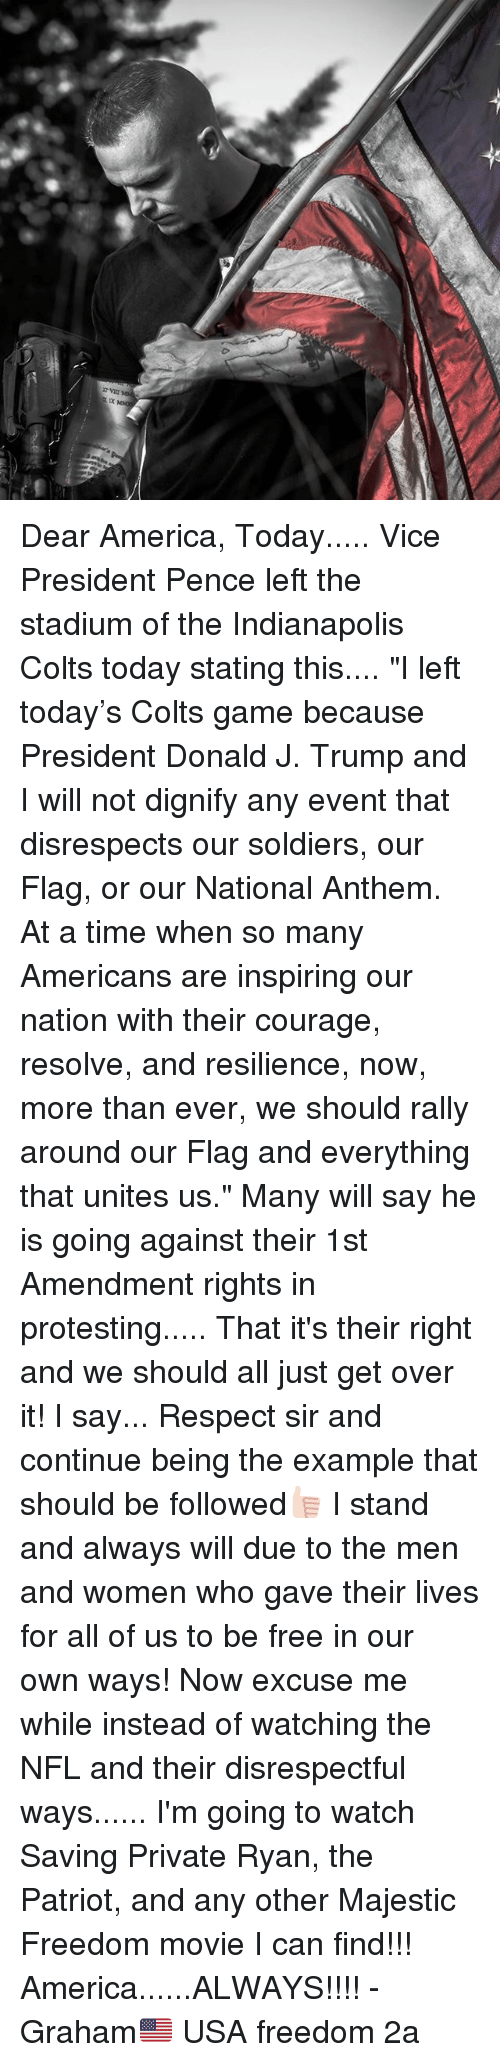 "America, Indianapolis Colts, and Memes: Dear America, Today..... Vice President Pence left the stadium of the Indianapolis Colts today stating this.... ""I left today's Colts game because President Donald J. Trump and I will not dignify any event that disrespects our soldiers, our Flag, or our National Anthem. At a time when so many Americans are inspiring our nation with their courage, resolve, and resilience, now, more than ever, we should rally around our Flag and everything that unites us."" Many will say he is going against their 1st Amendment rights in protesting..... That it's their right and we should all just get over it! I say... Respect sir and continue being the example that should be followed👍🏻 I stand and always will due to the men and women who gave their lives for all of us to be free in our own ways! Now excuse me while instead of watching the NFL and their disrespectful ways...... I'm going to watch Saving Private Ryan, the Patriot, and any other Majestic Freedom movie I can find!!! America......ALWAYS!!!! -Graham🇺🇸 USA freedom 2a"